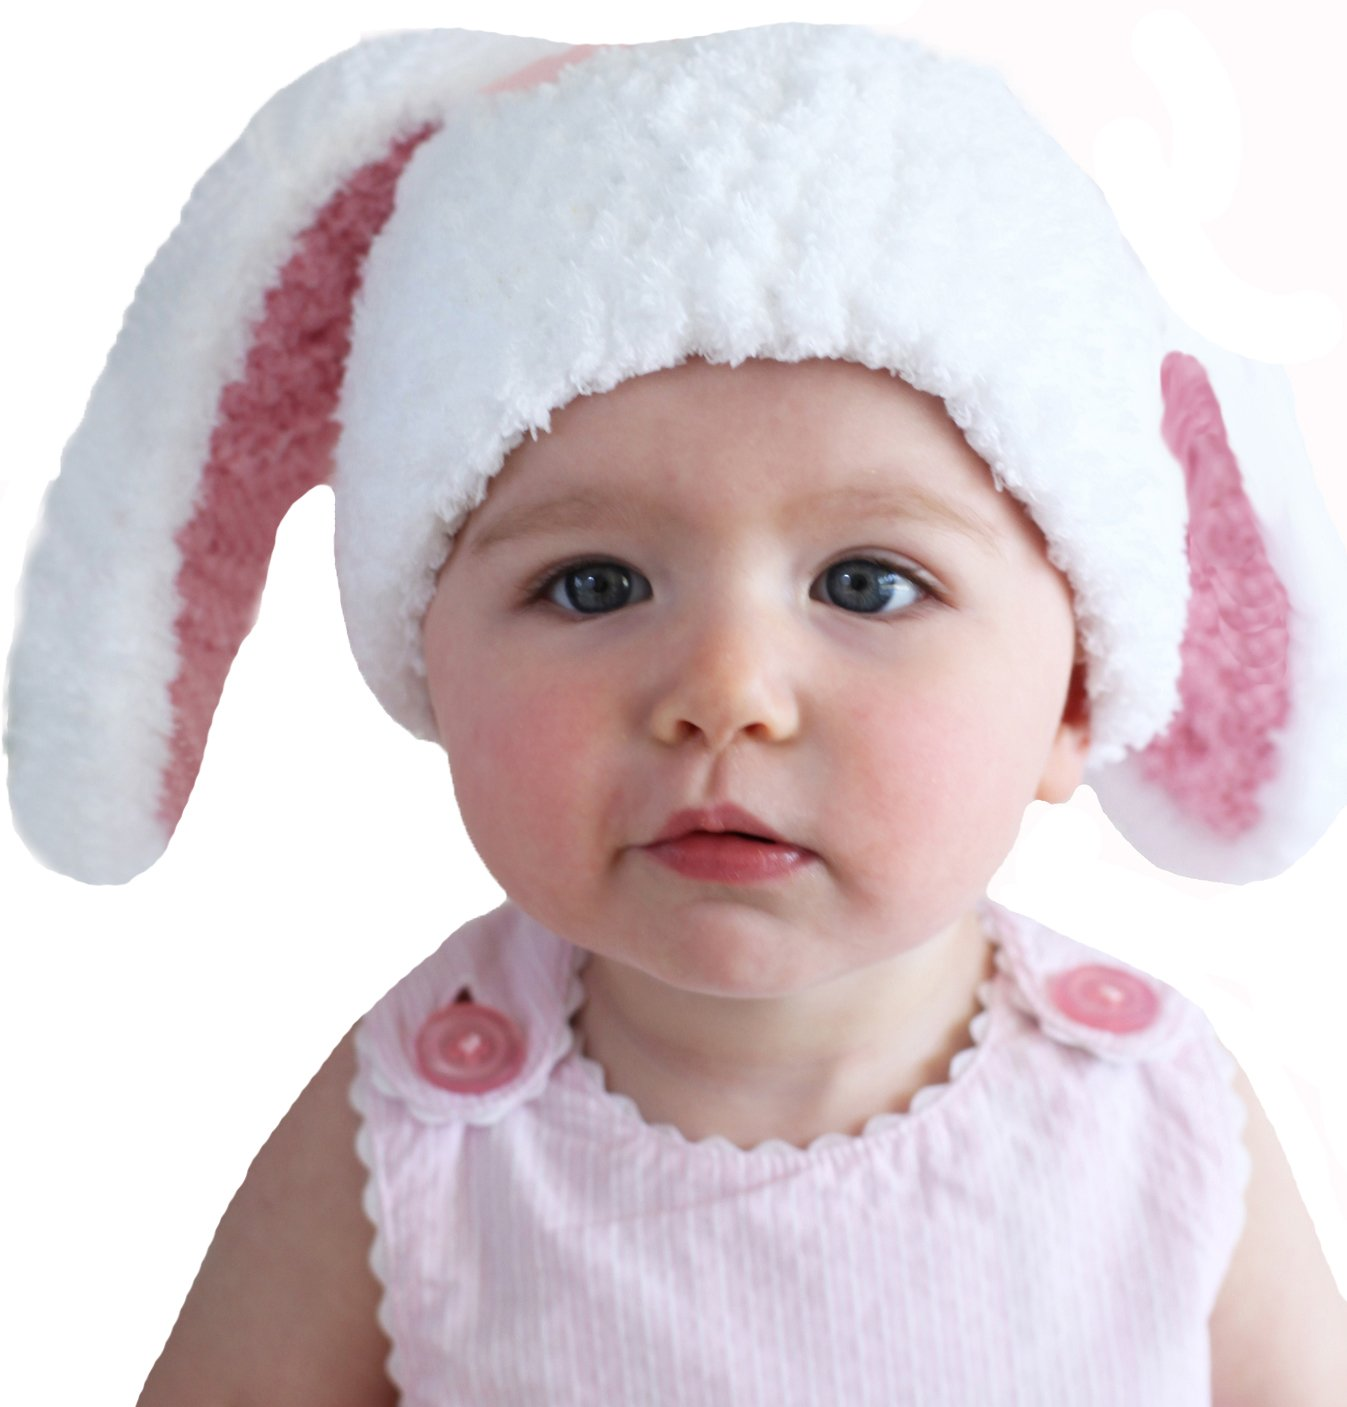 Melondipity Girls Floppy Bunny Baby Hat - Handmade White with Pink Ears Premium Beanie (Newborn) by Melondipity Baby Hat